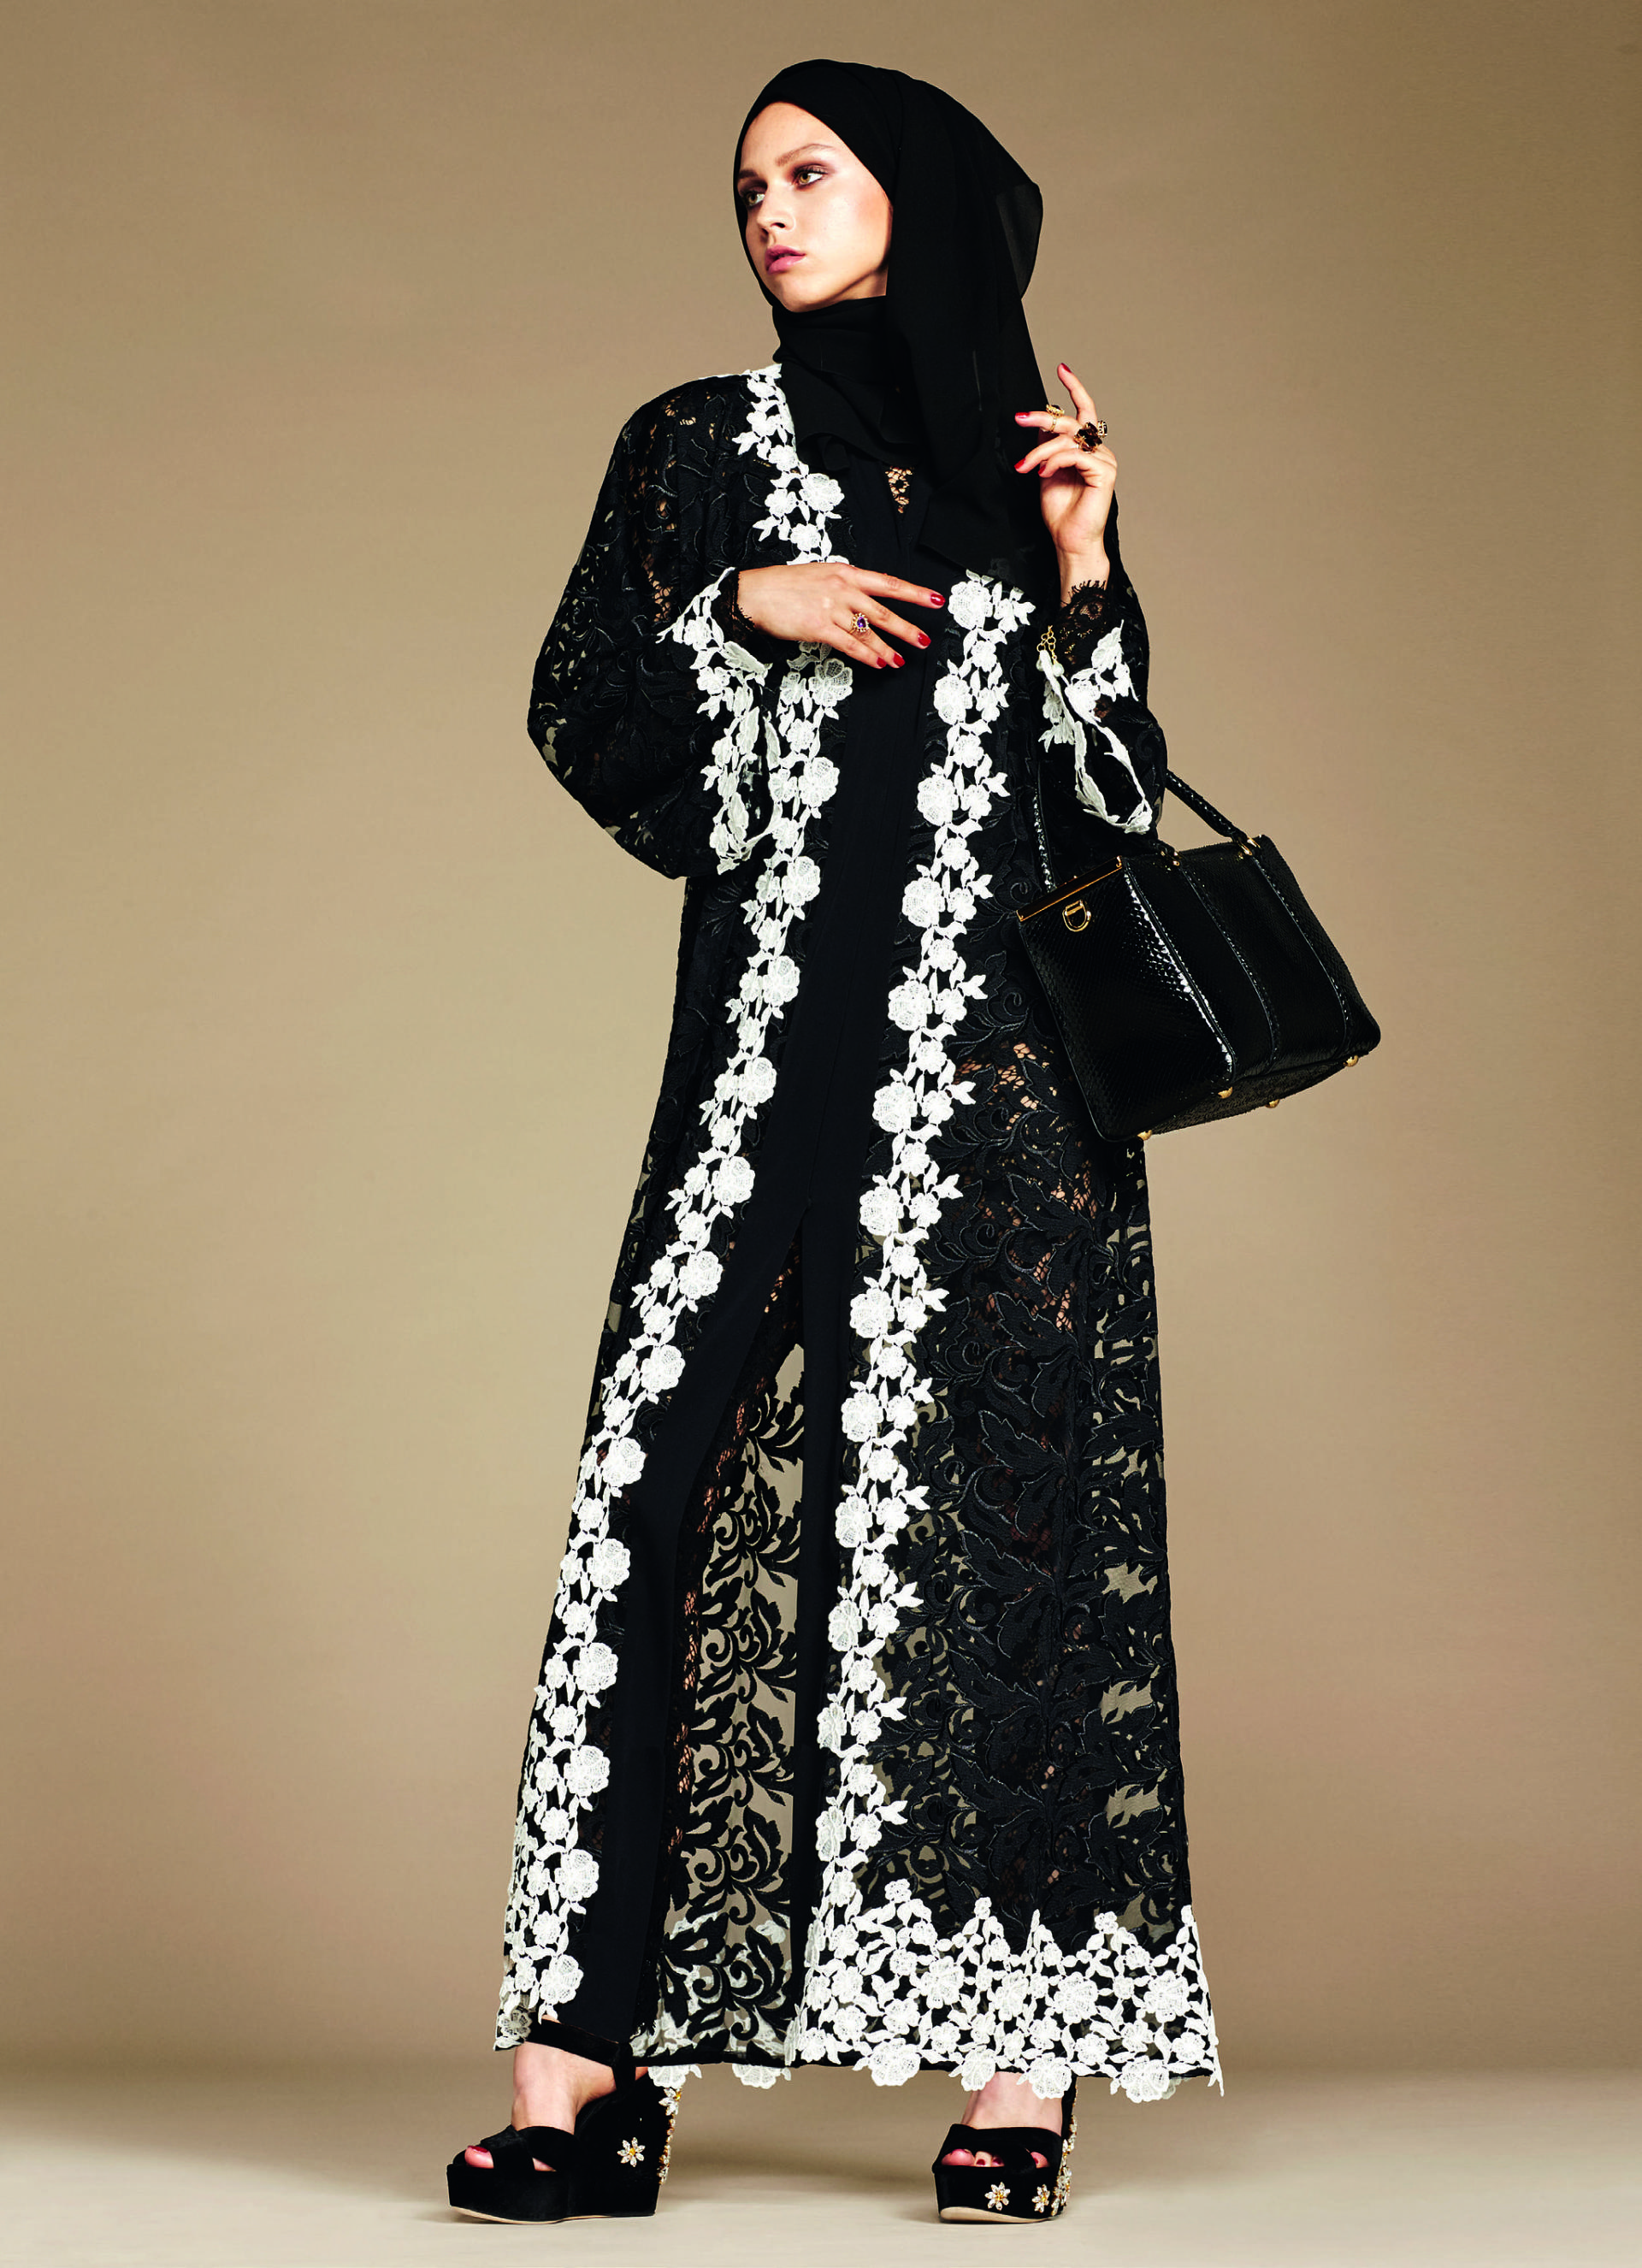 Over_Exposed_Dolce-Gabbana-Hijab-Abaya-Collection13